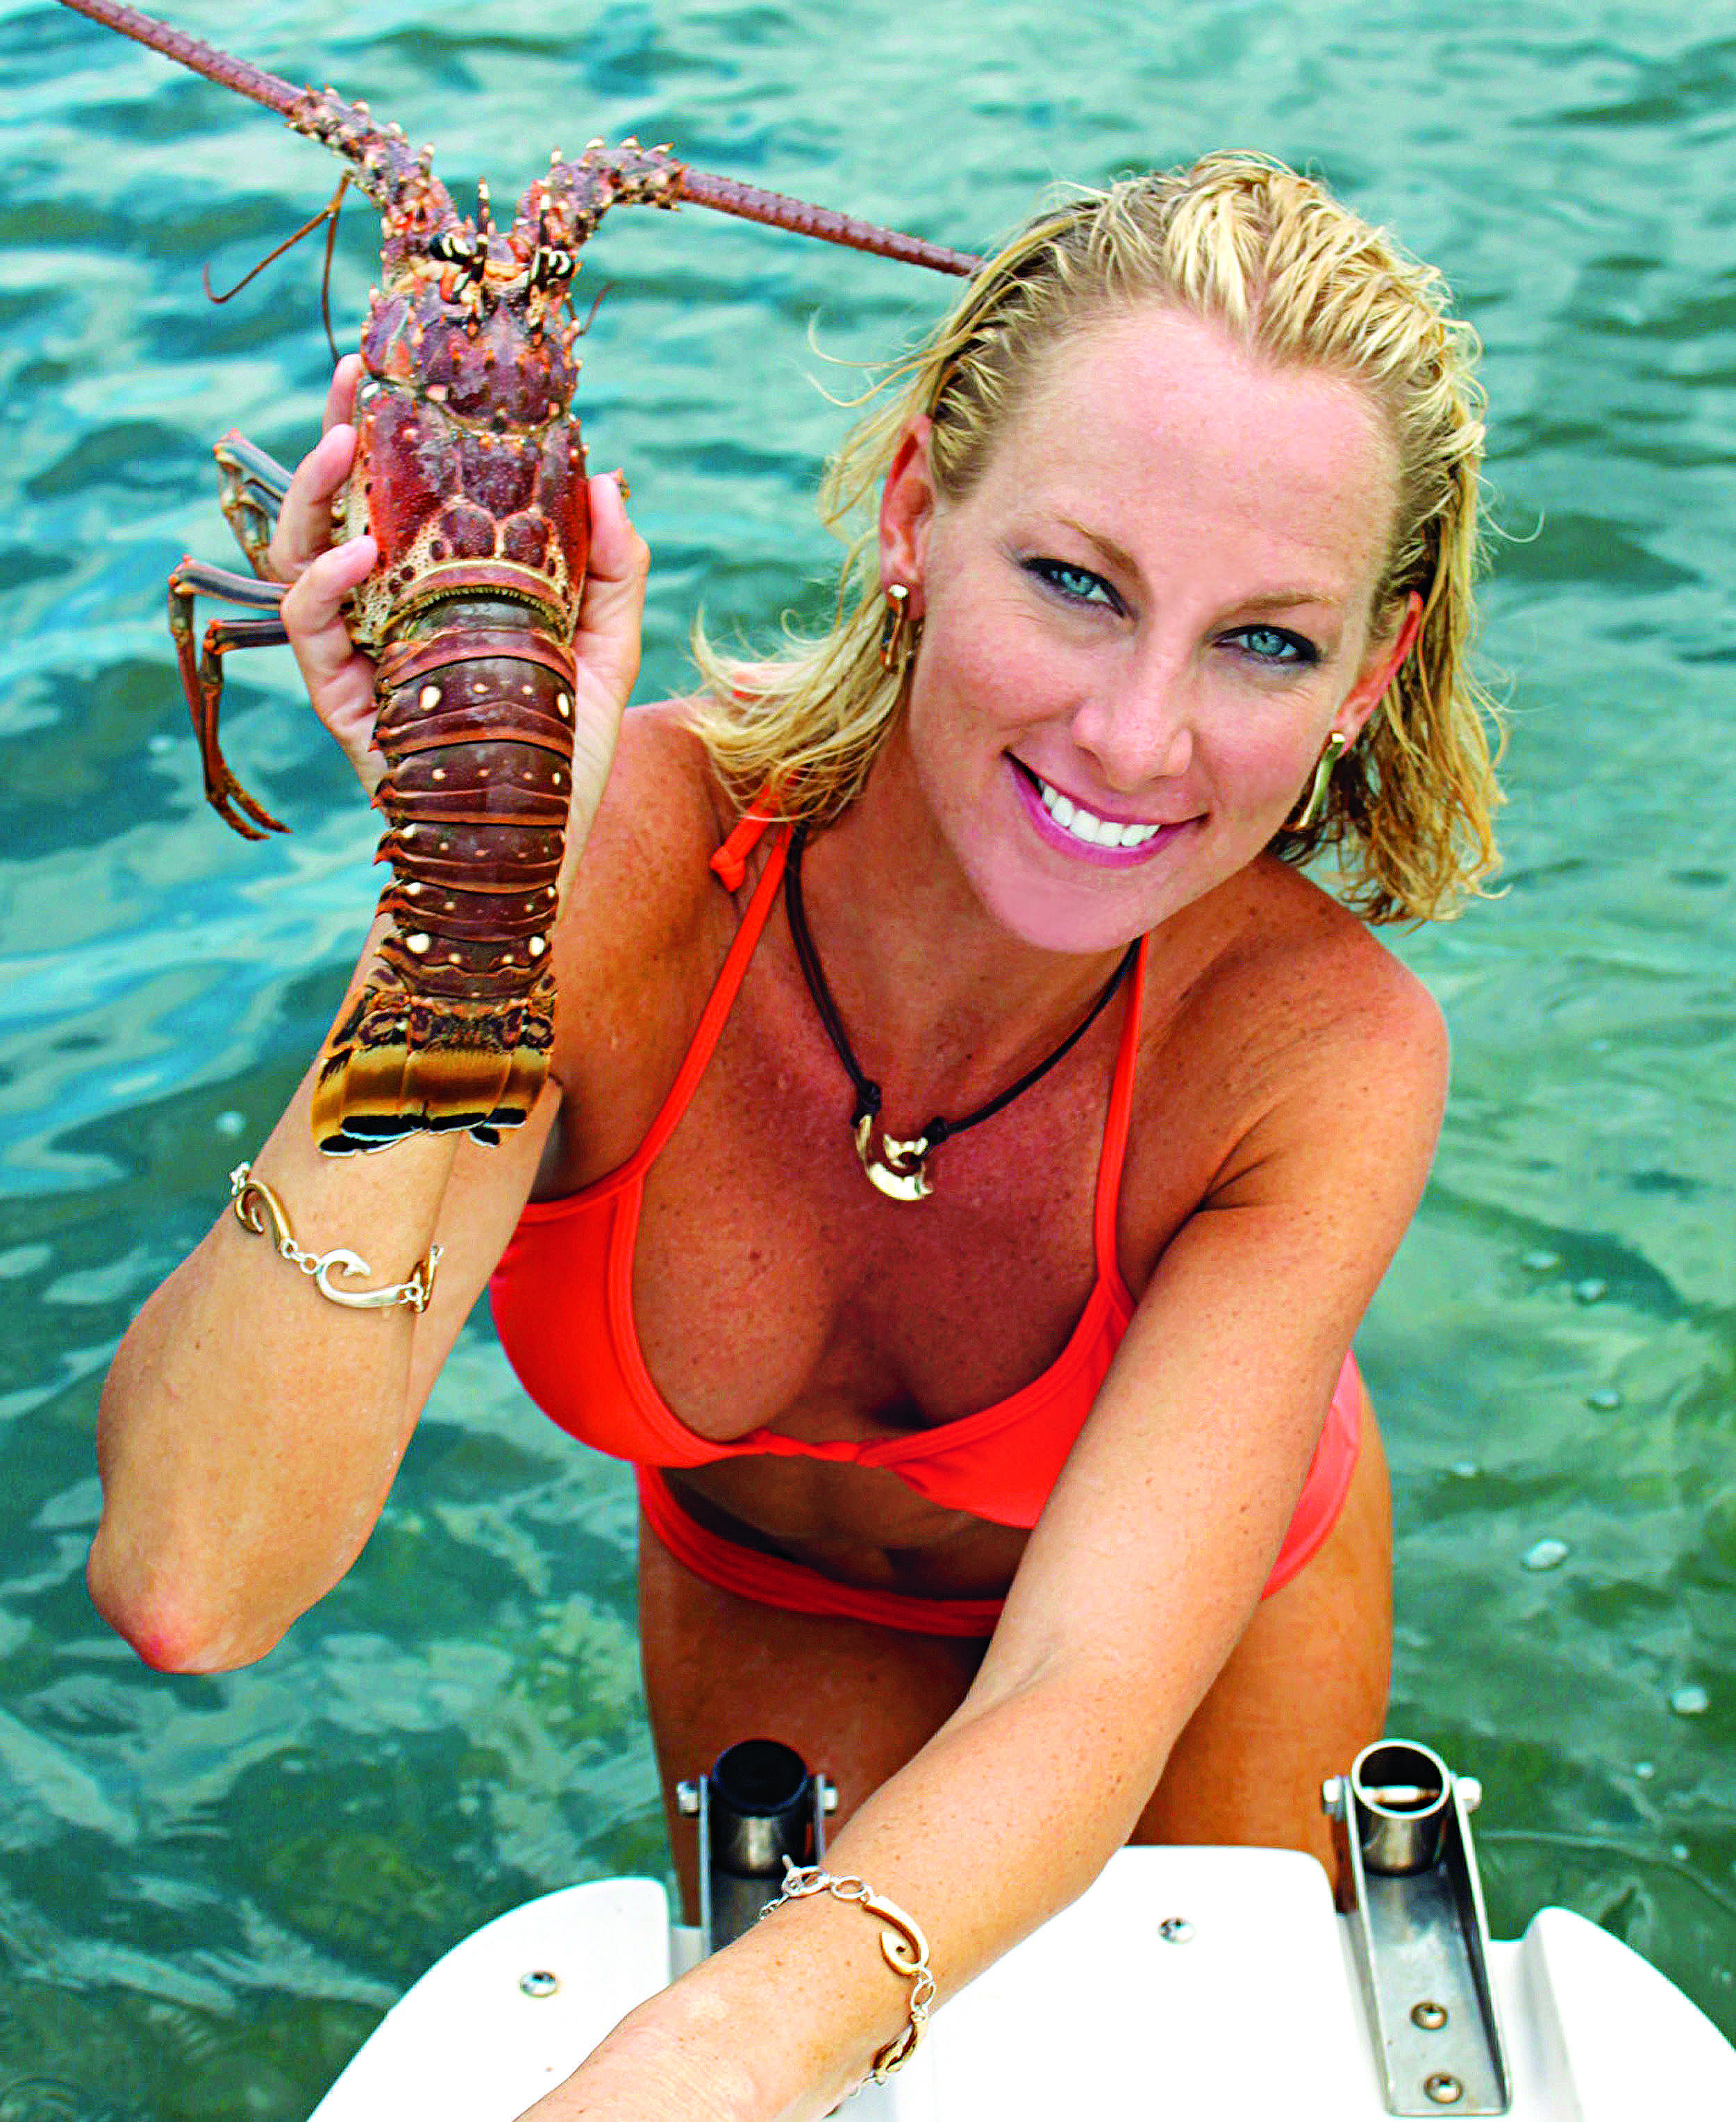 Melt the butter! Spiny Lobster season ...